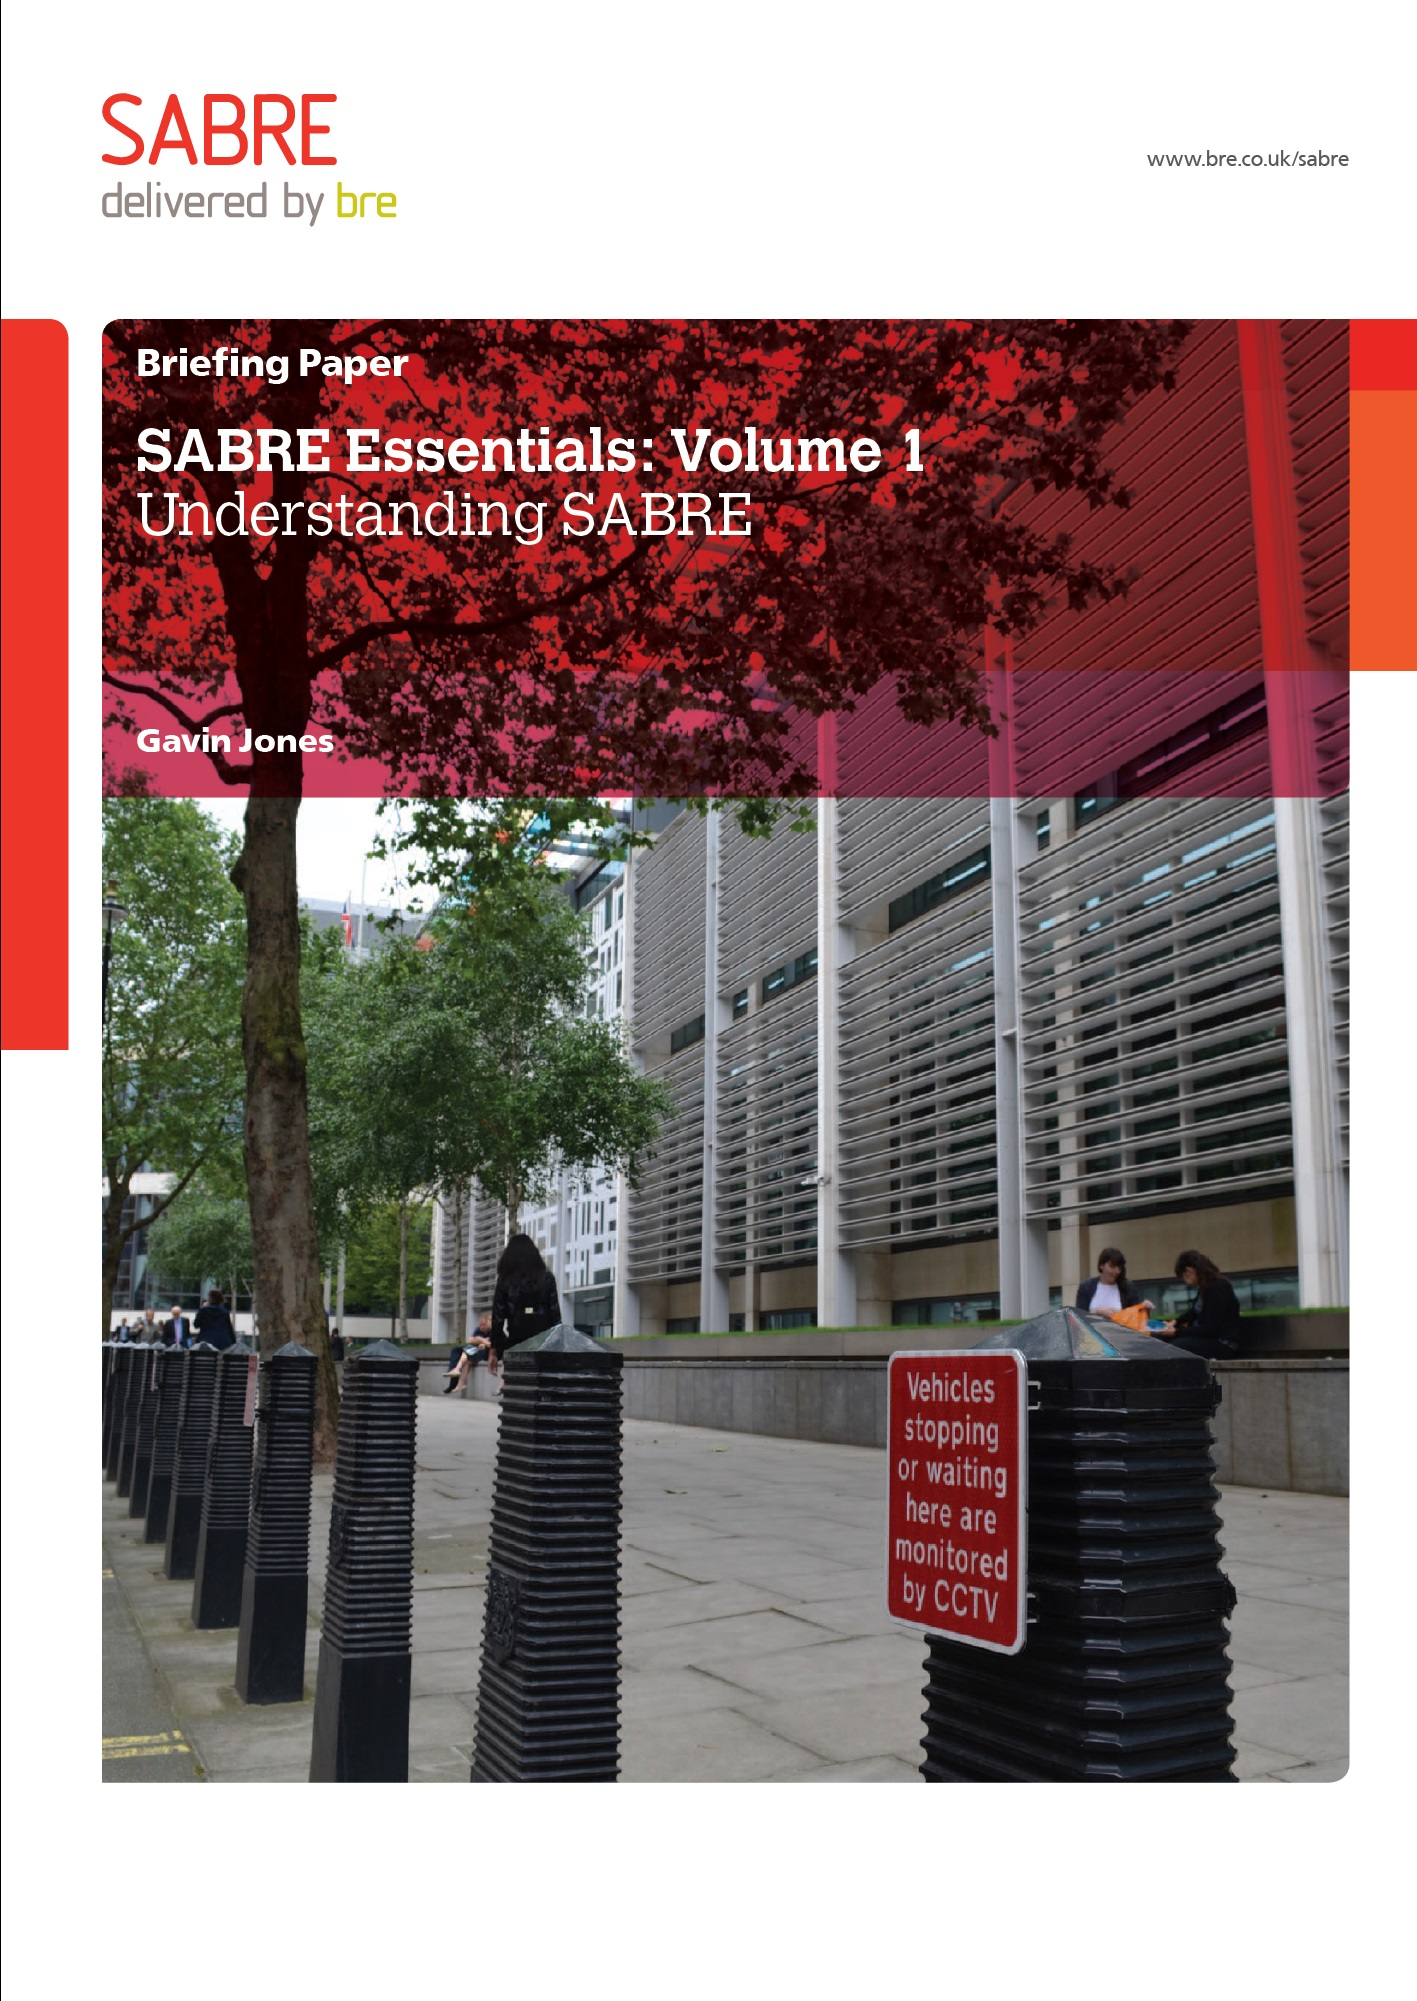 sabre-essentials-vol-1